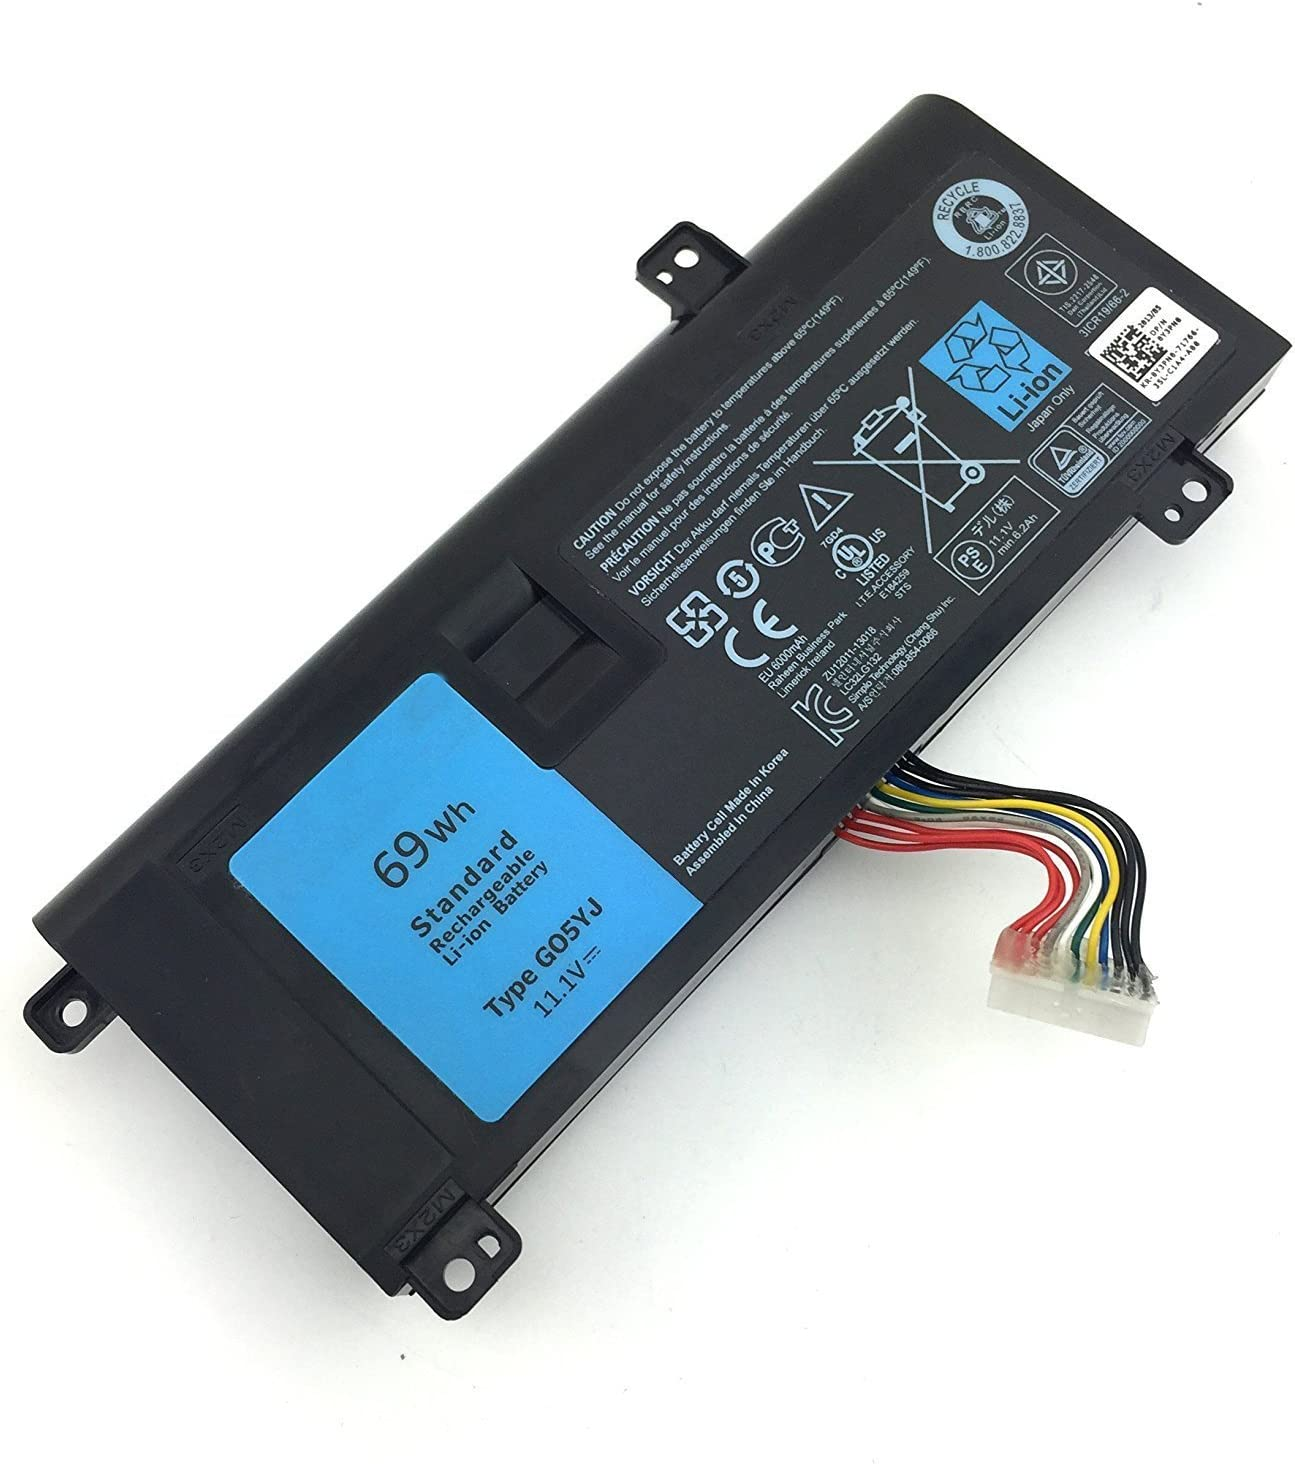 New G05YJ M14X 0G05YJ 6-Cell Laptop Battery Compatible with Dell Alienware A14 R4 14D-1528 ALW14D-5728 ALW14D-5528 ALW14D Y3PN0 8X70T [69Wh 11.1V]-12 Months Warranty